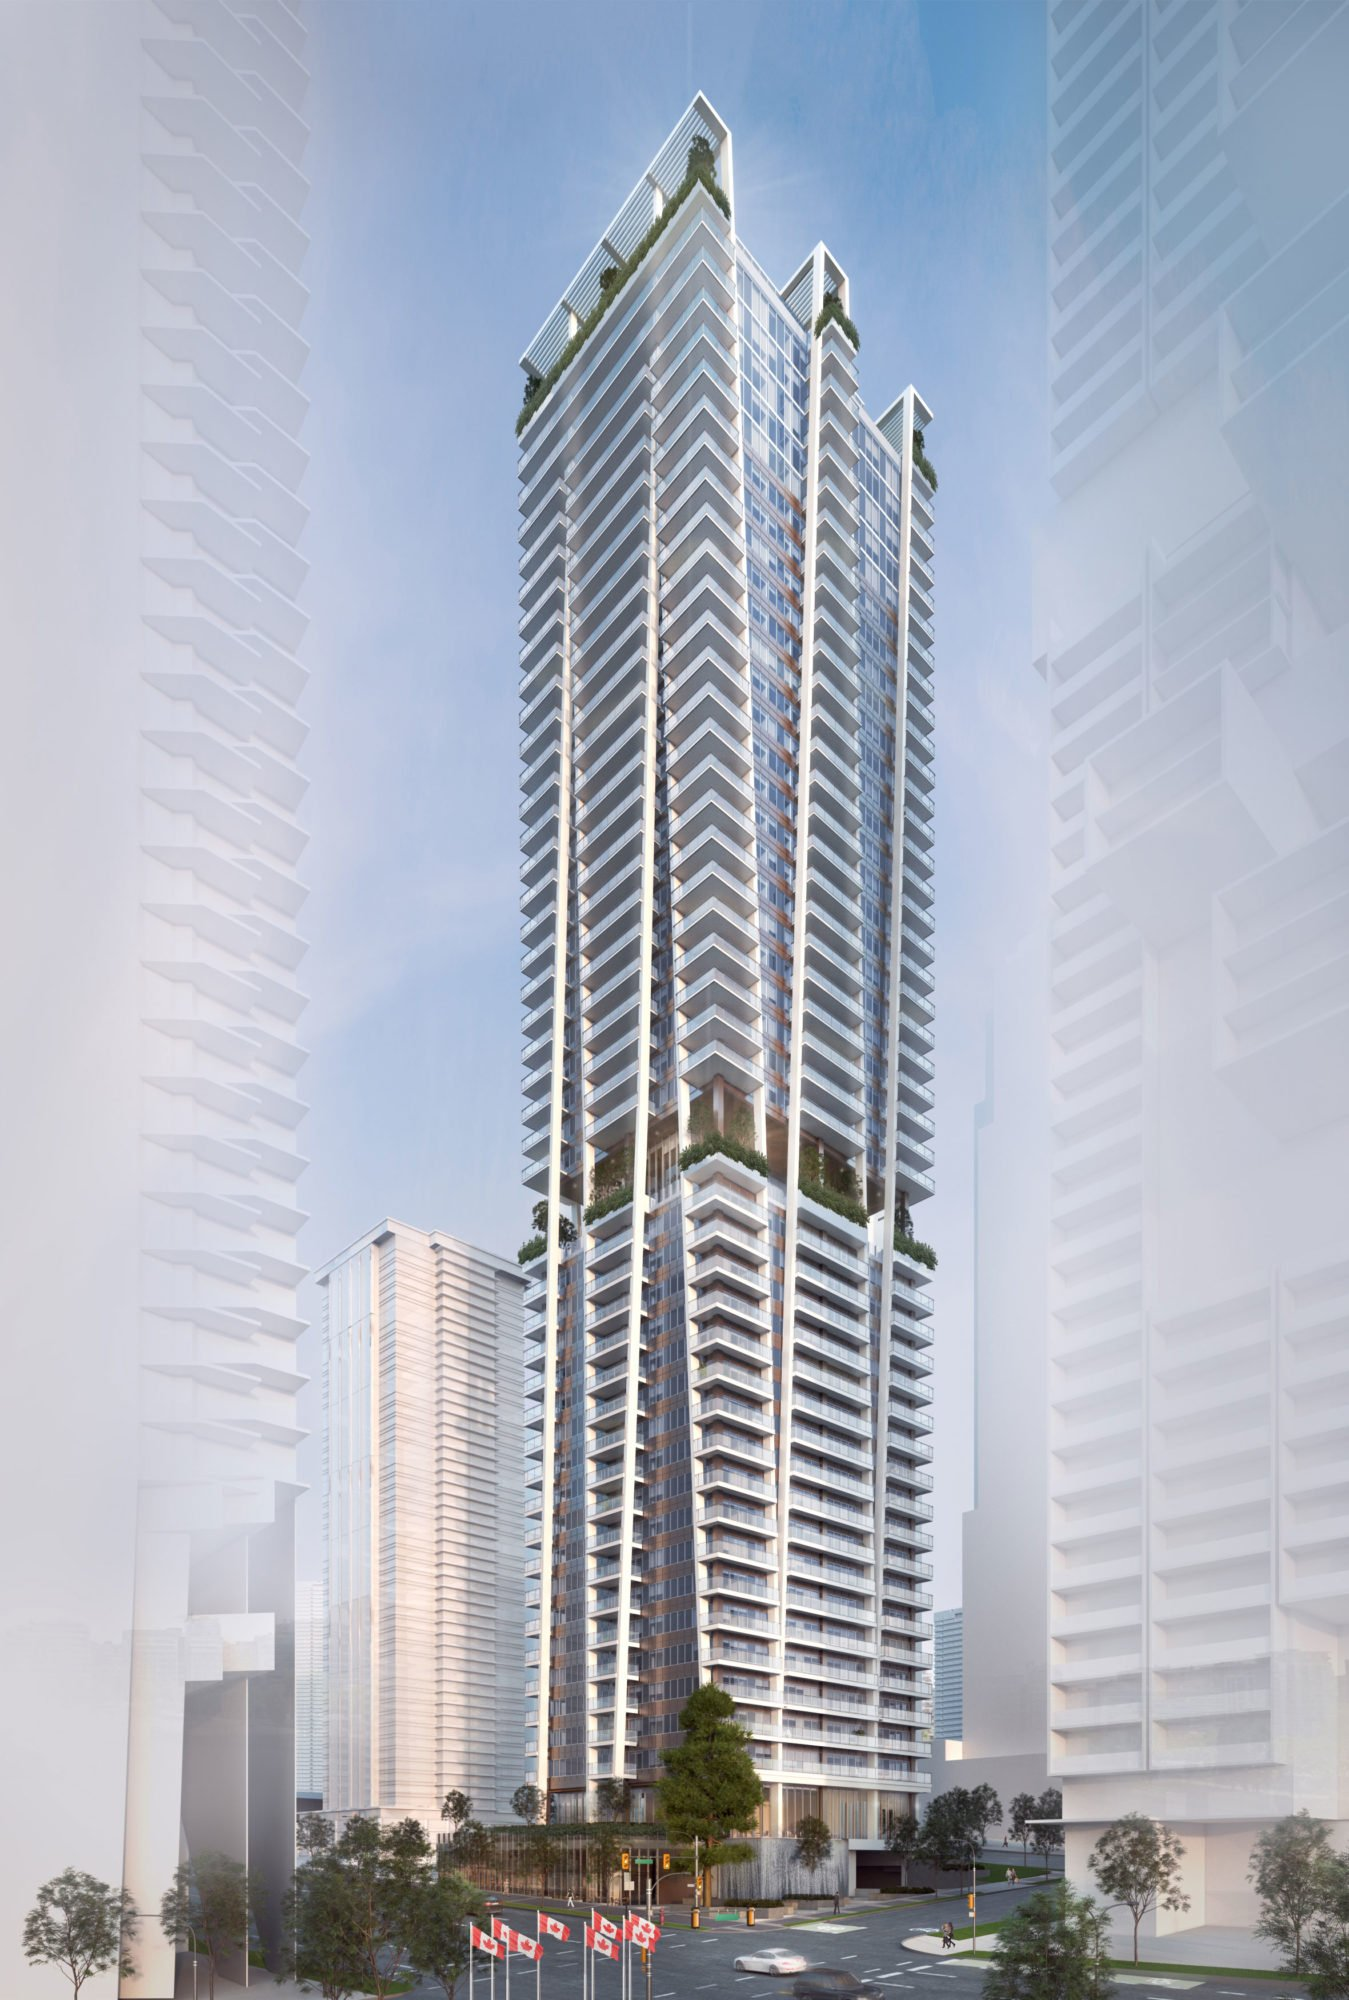 Georgian Towers rental apartments to be demolished, replaced with 49-storey rental and condo tower